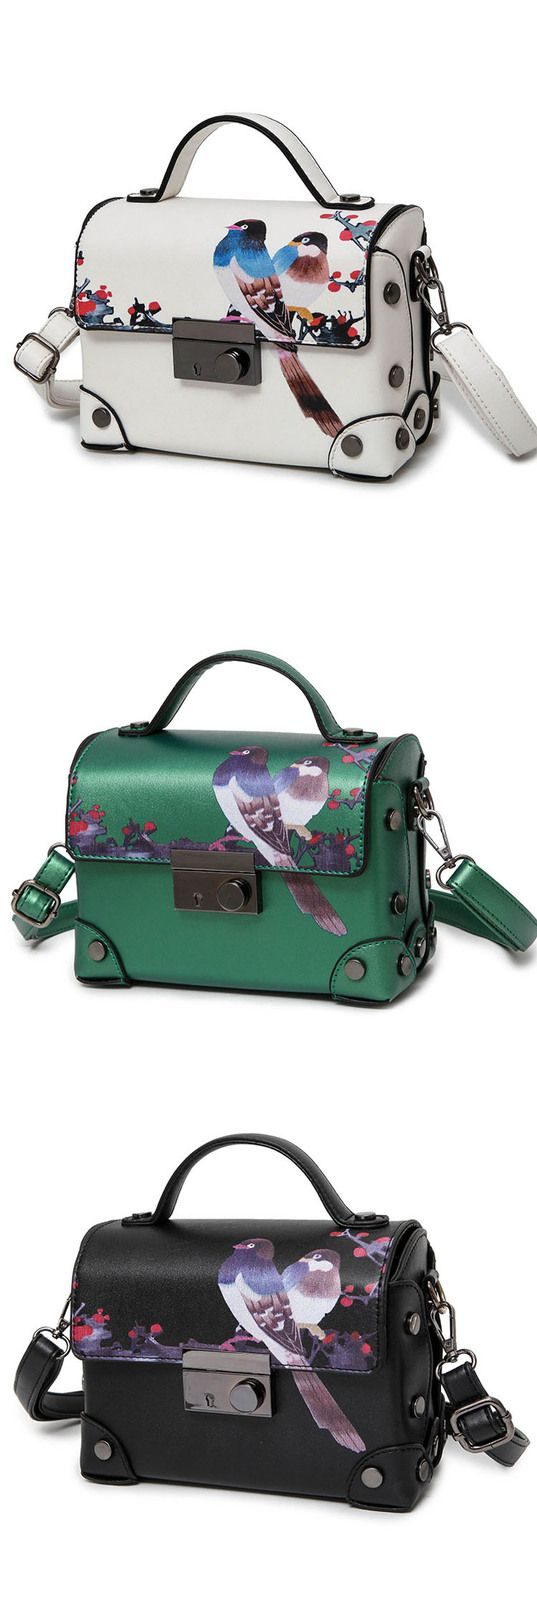 Item Type:Women Tote/Top handle bag/Shoulder bag/Handbag  100% Brand new.  Size: 20cm*9cm*14cm  Material: Quality PU leather  Color: Black ,White ,Green  Usage: Fashion women's handbag, the best gift for women  If there is any questions please ...